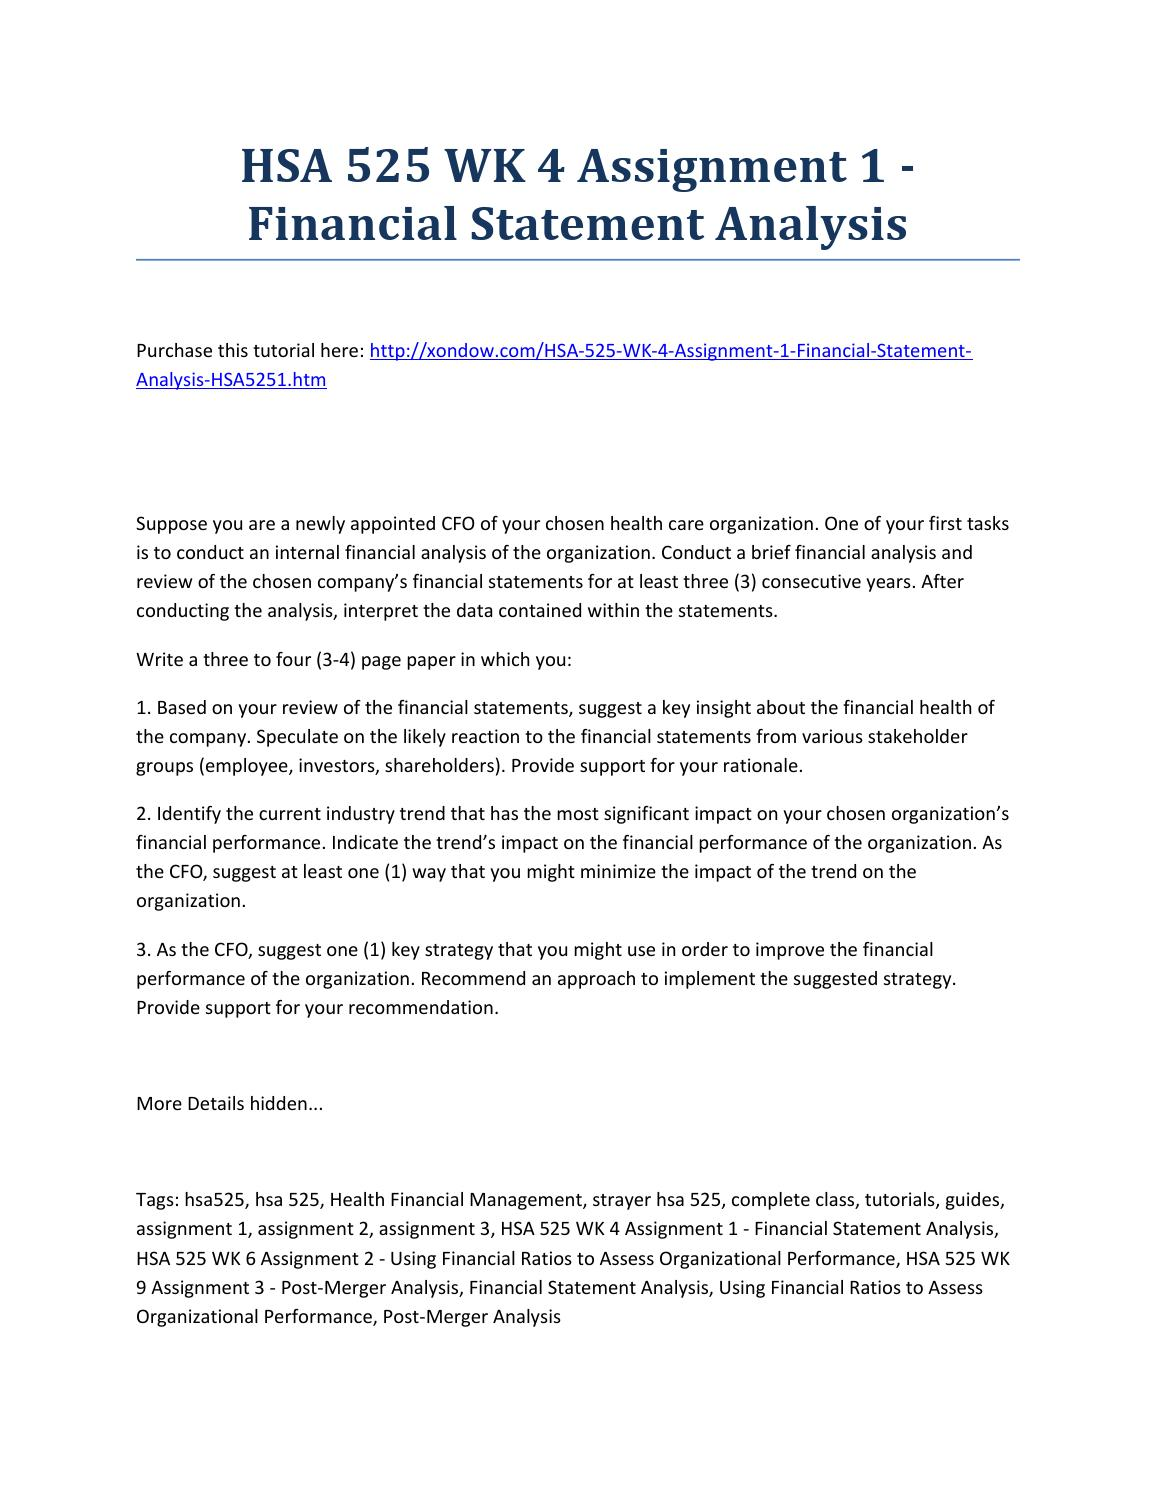 Essay on financial statements